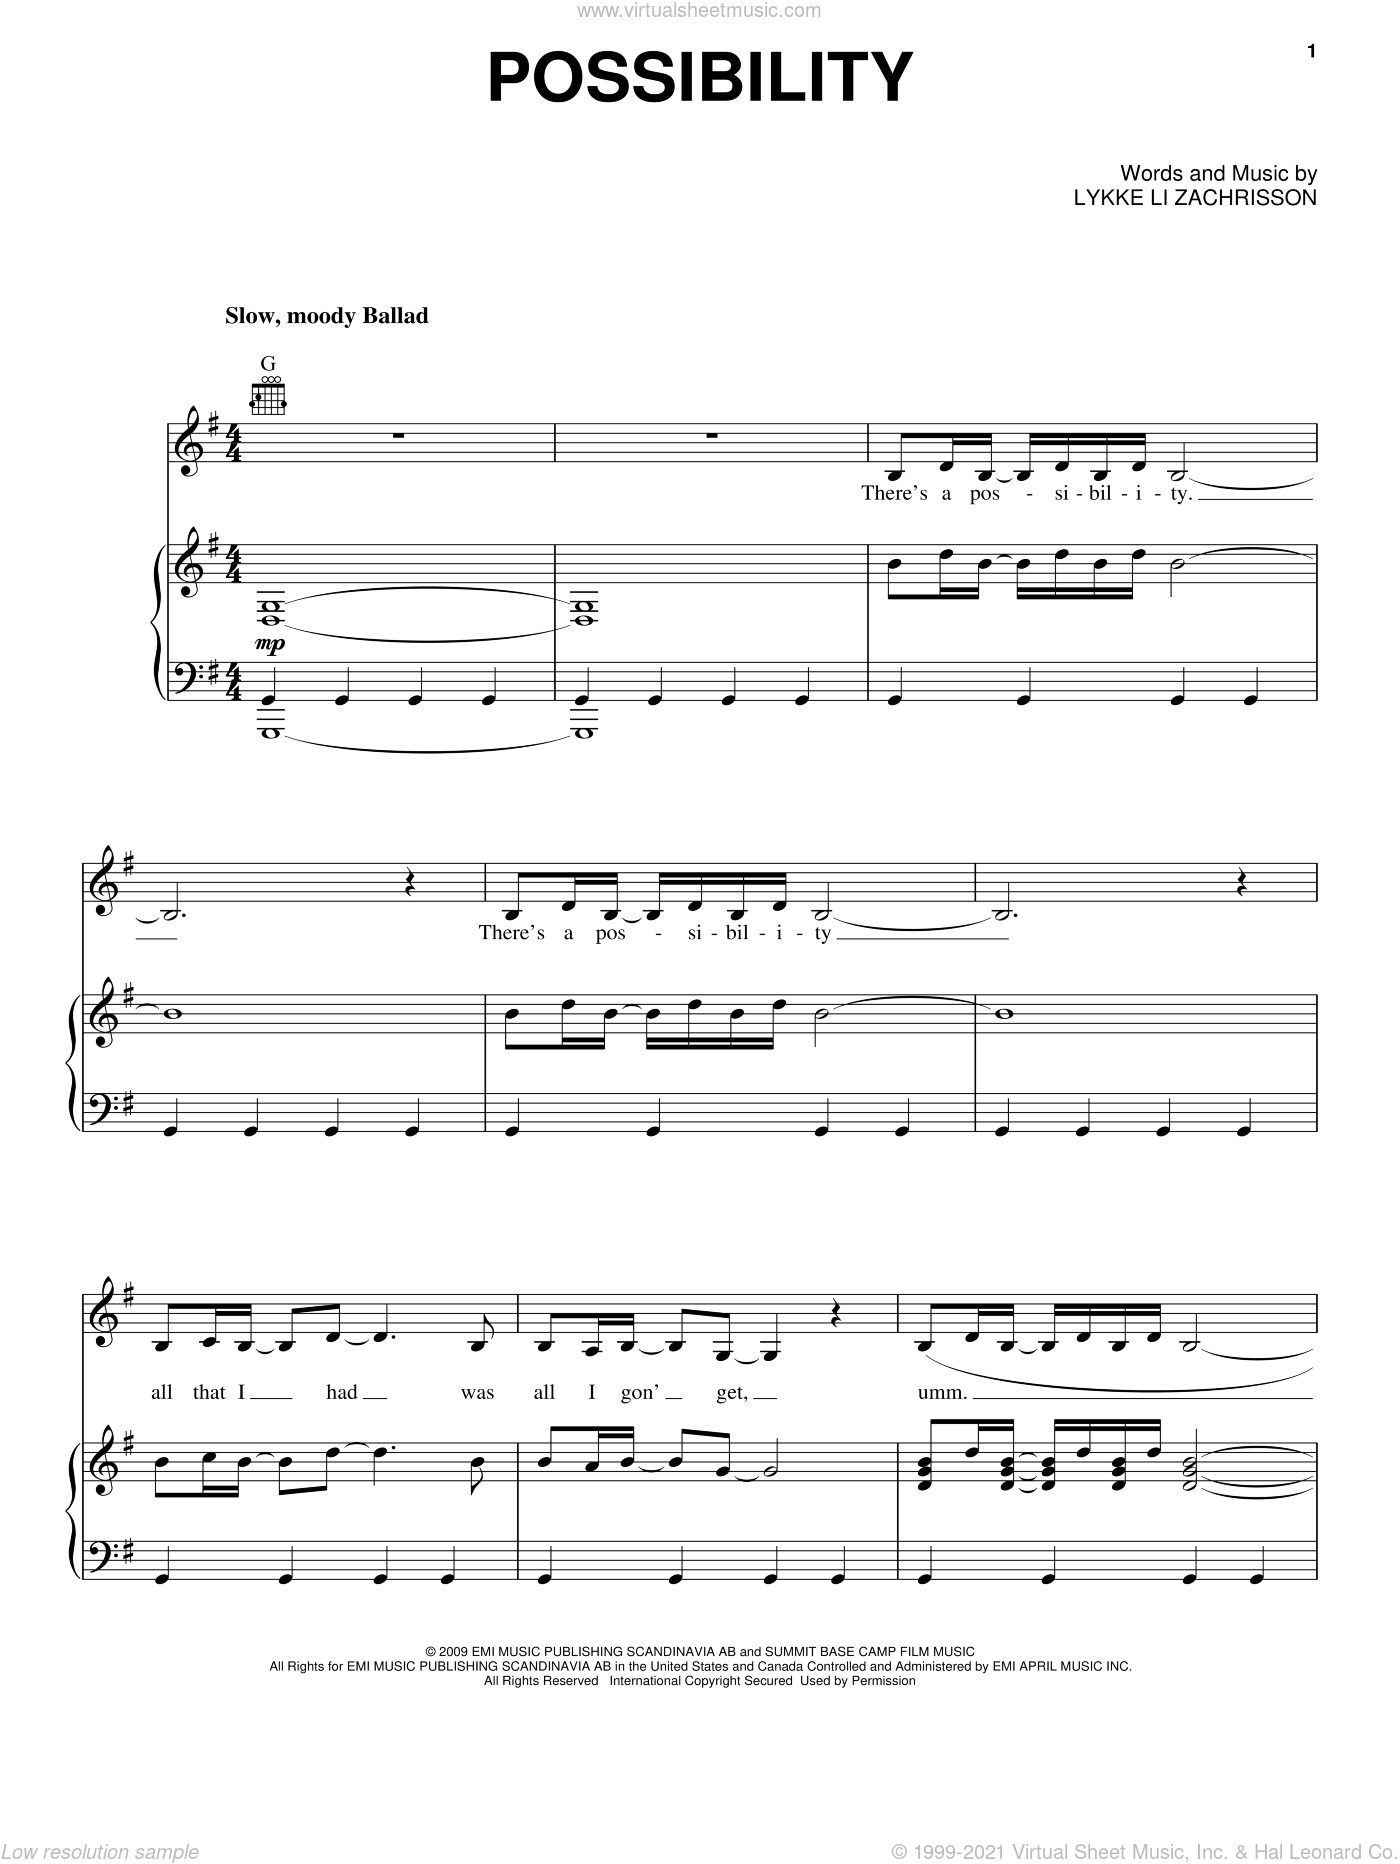 Possibility sheet music for voice, piano or guitar by Lykke Li Zachrisson